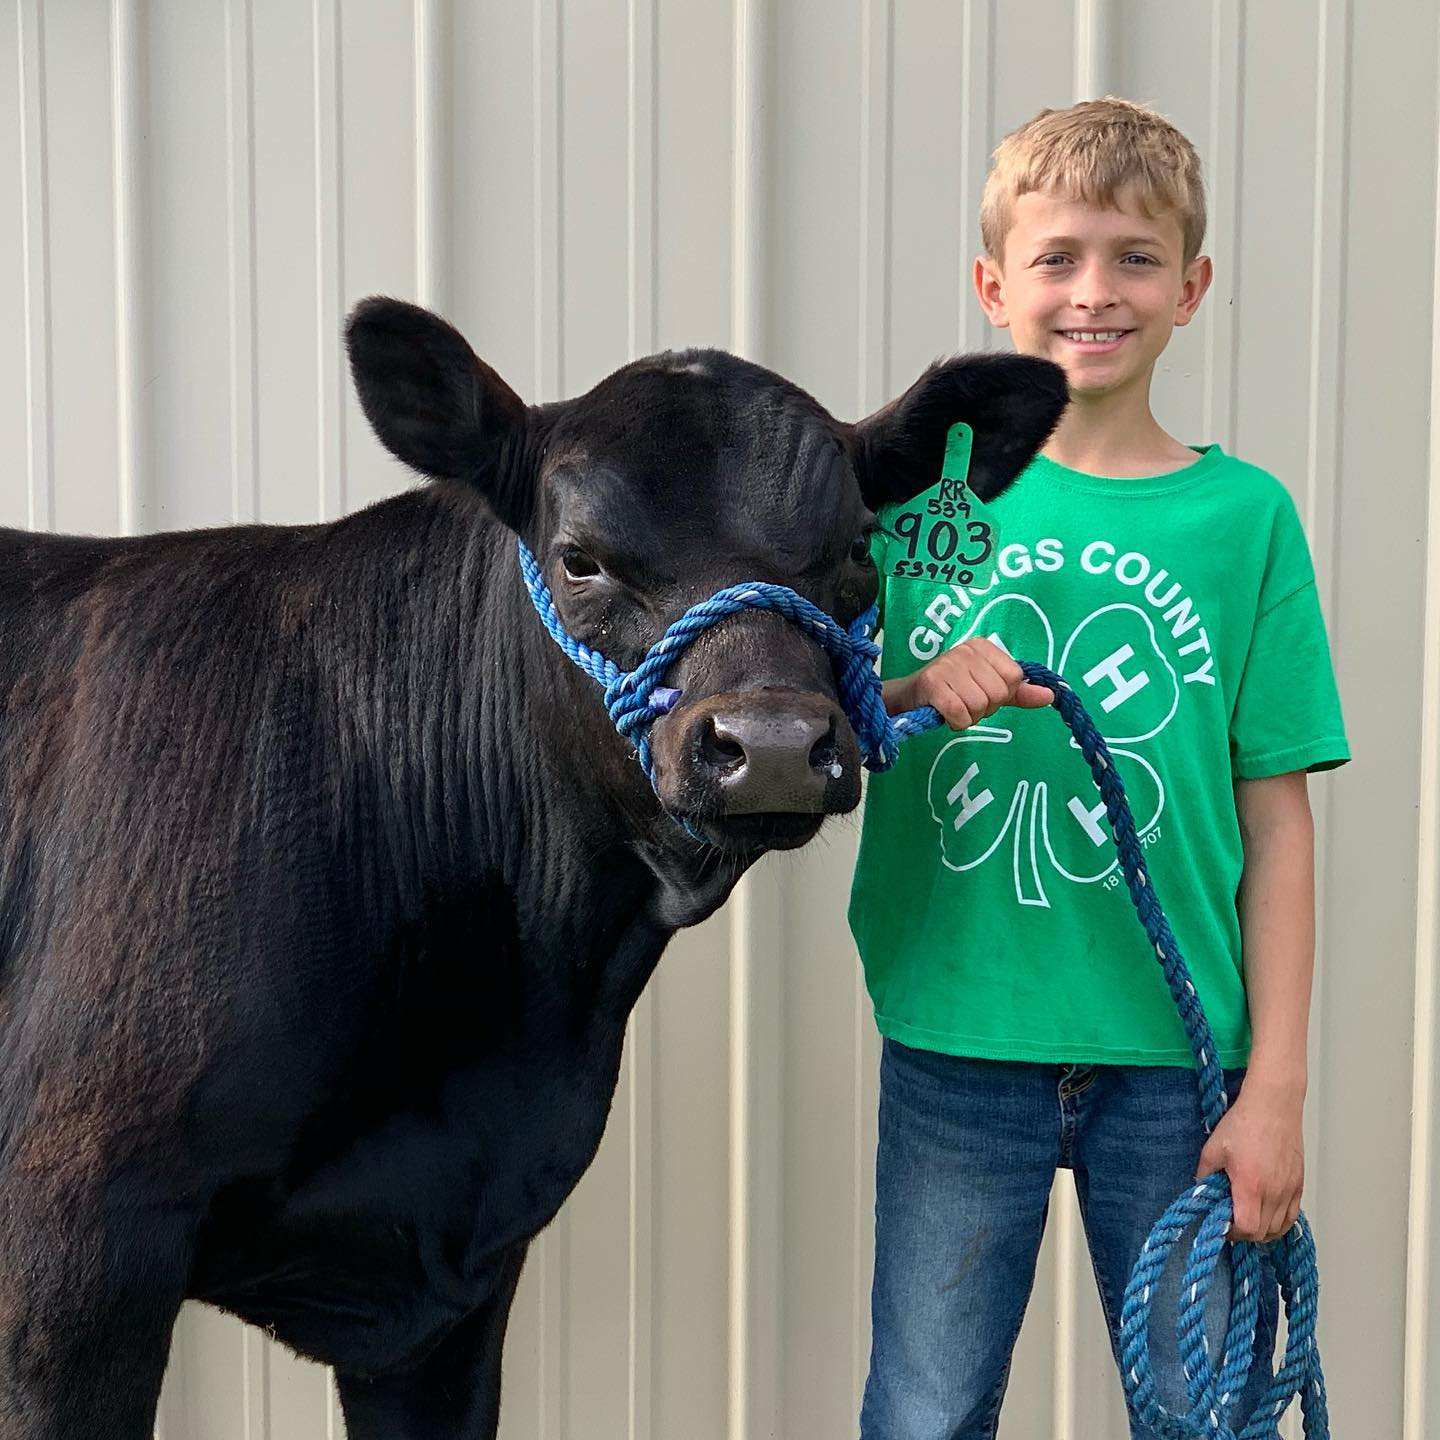 Ressler Angus Ranch - Ready and Reliable to provide you with quality Angus cattle. Located in Eastern North Dakota